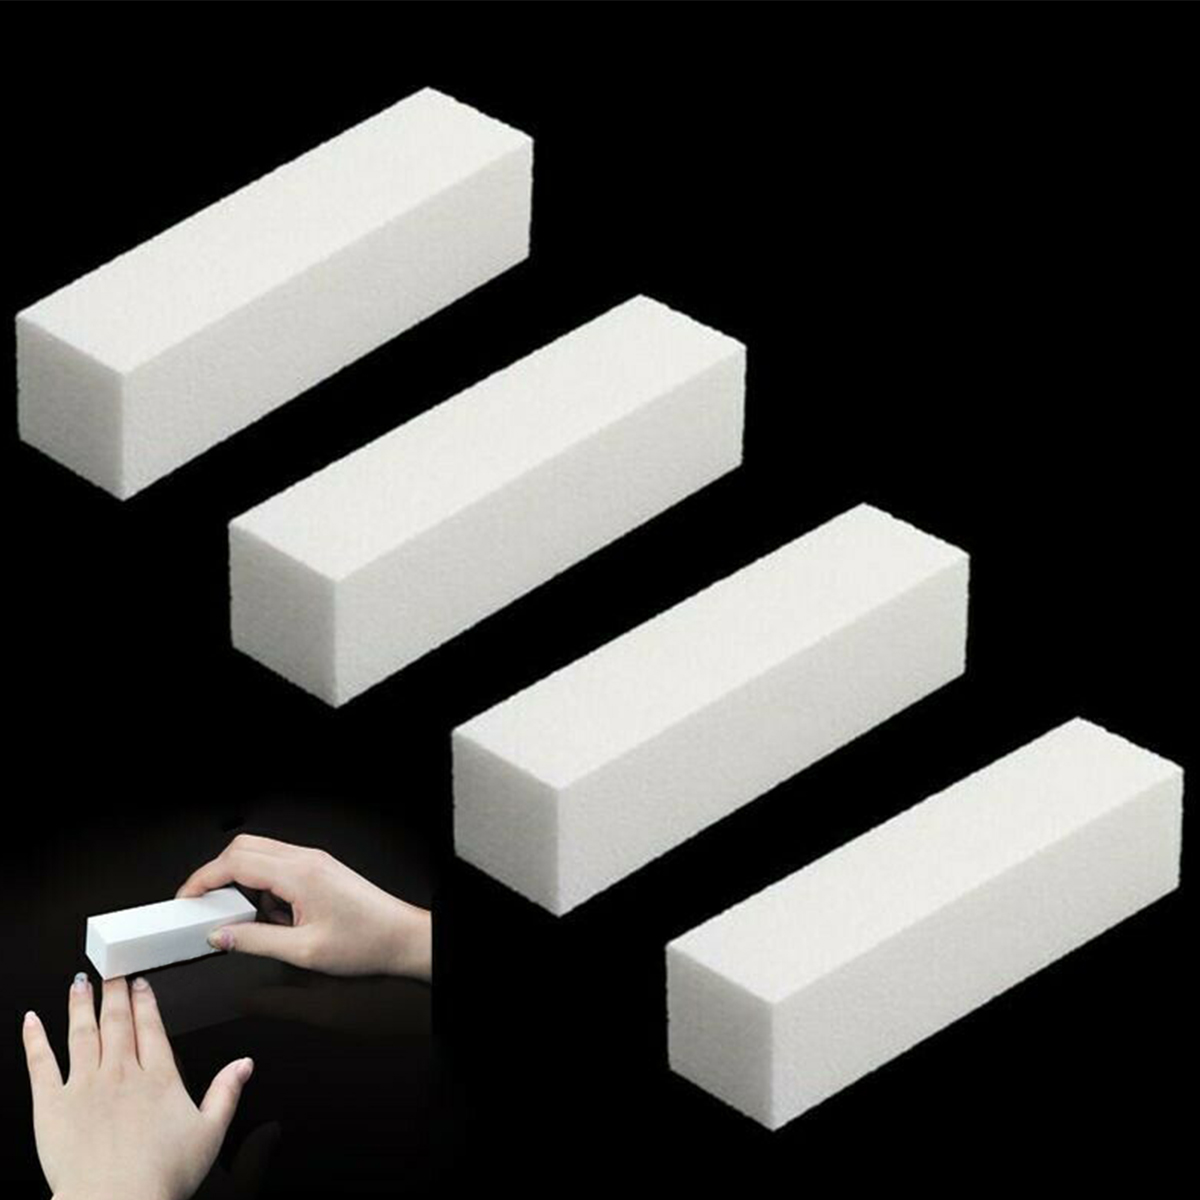 4pcs 4 Way Nail Art Buffer Sanding Sponge Nail File Polisher Block Pedicure Manicure Nails Buffing Sanding Tool DIY Nail Buffers